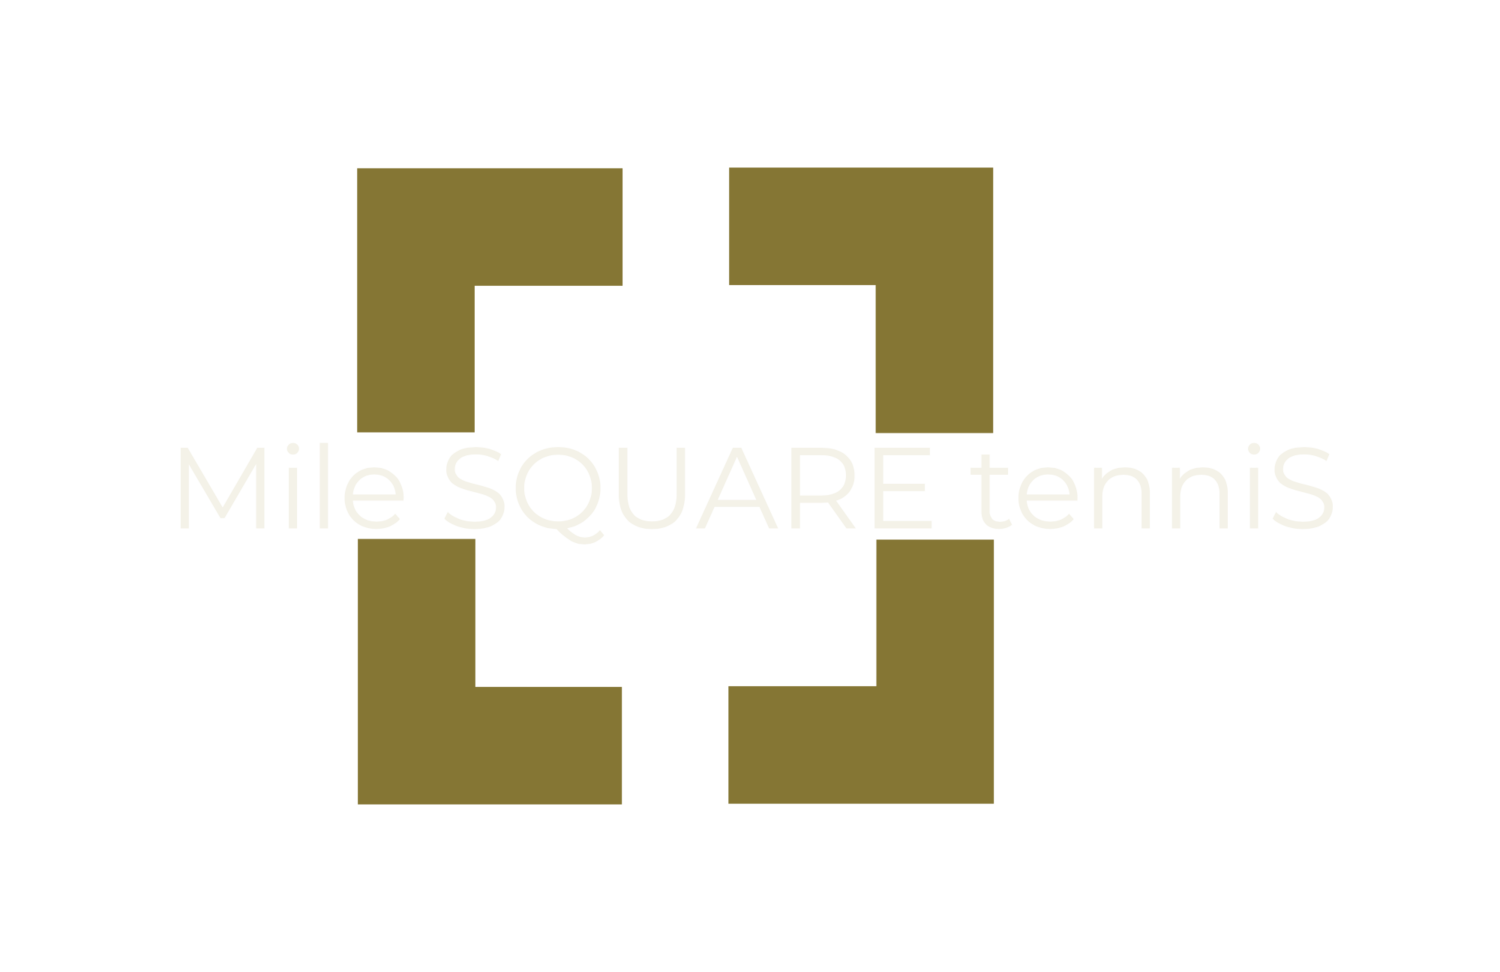 Mile Square Tennis